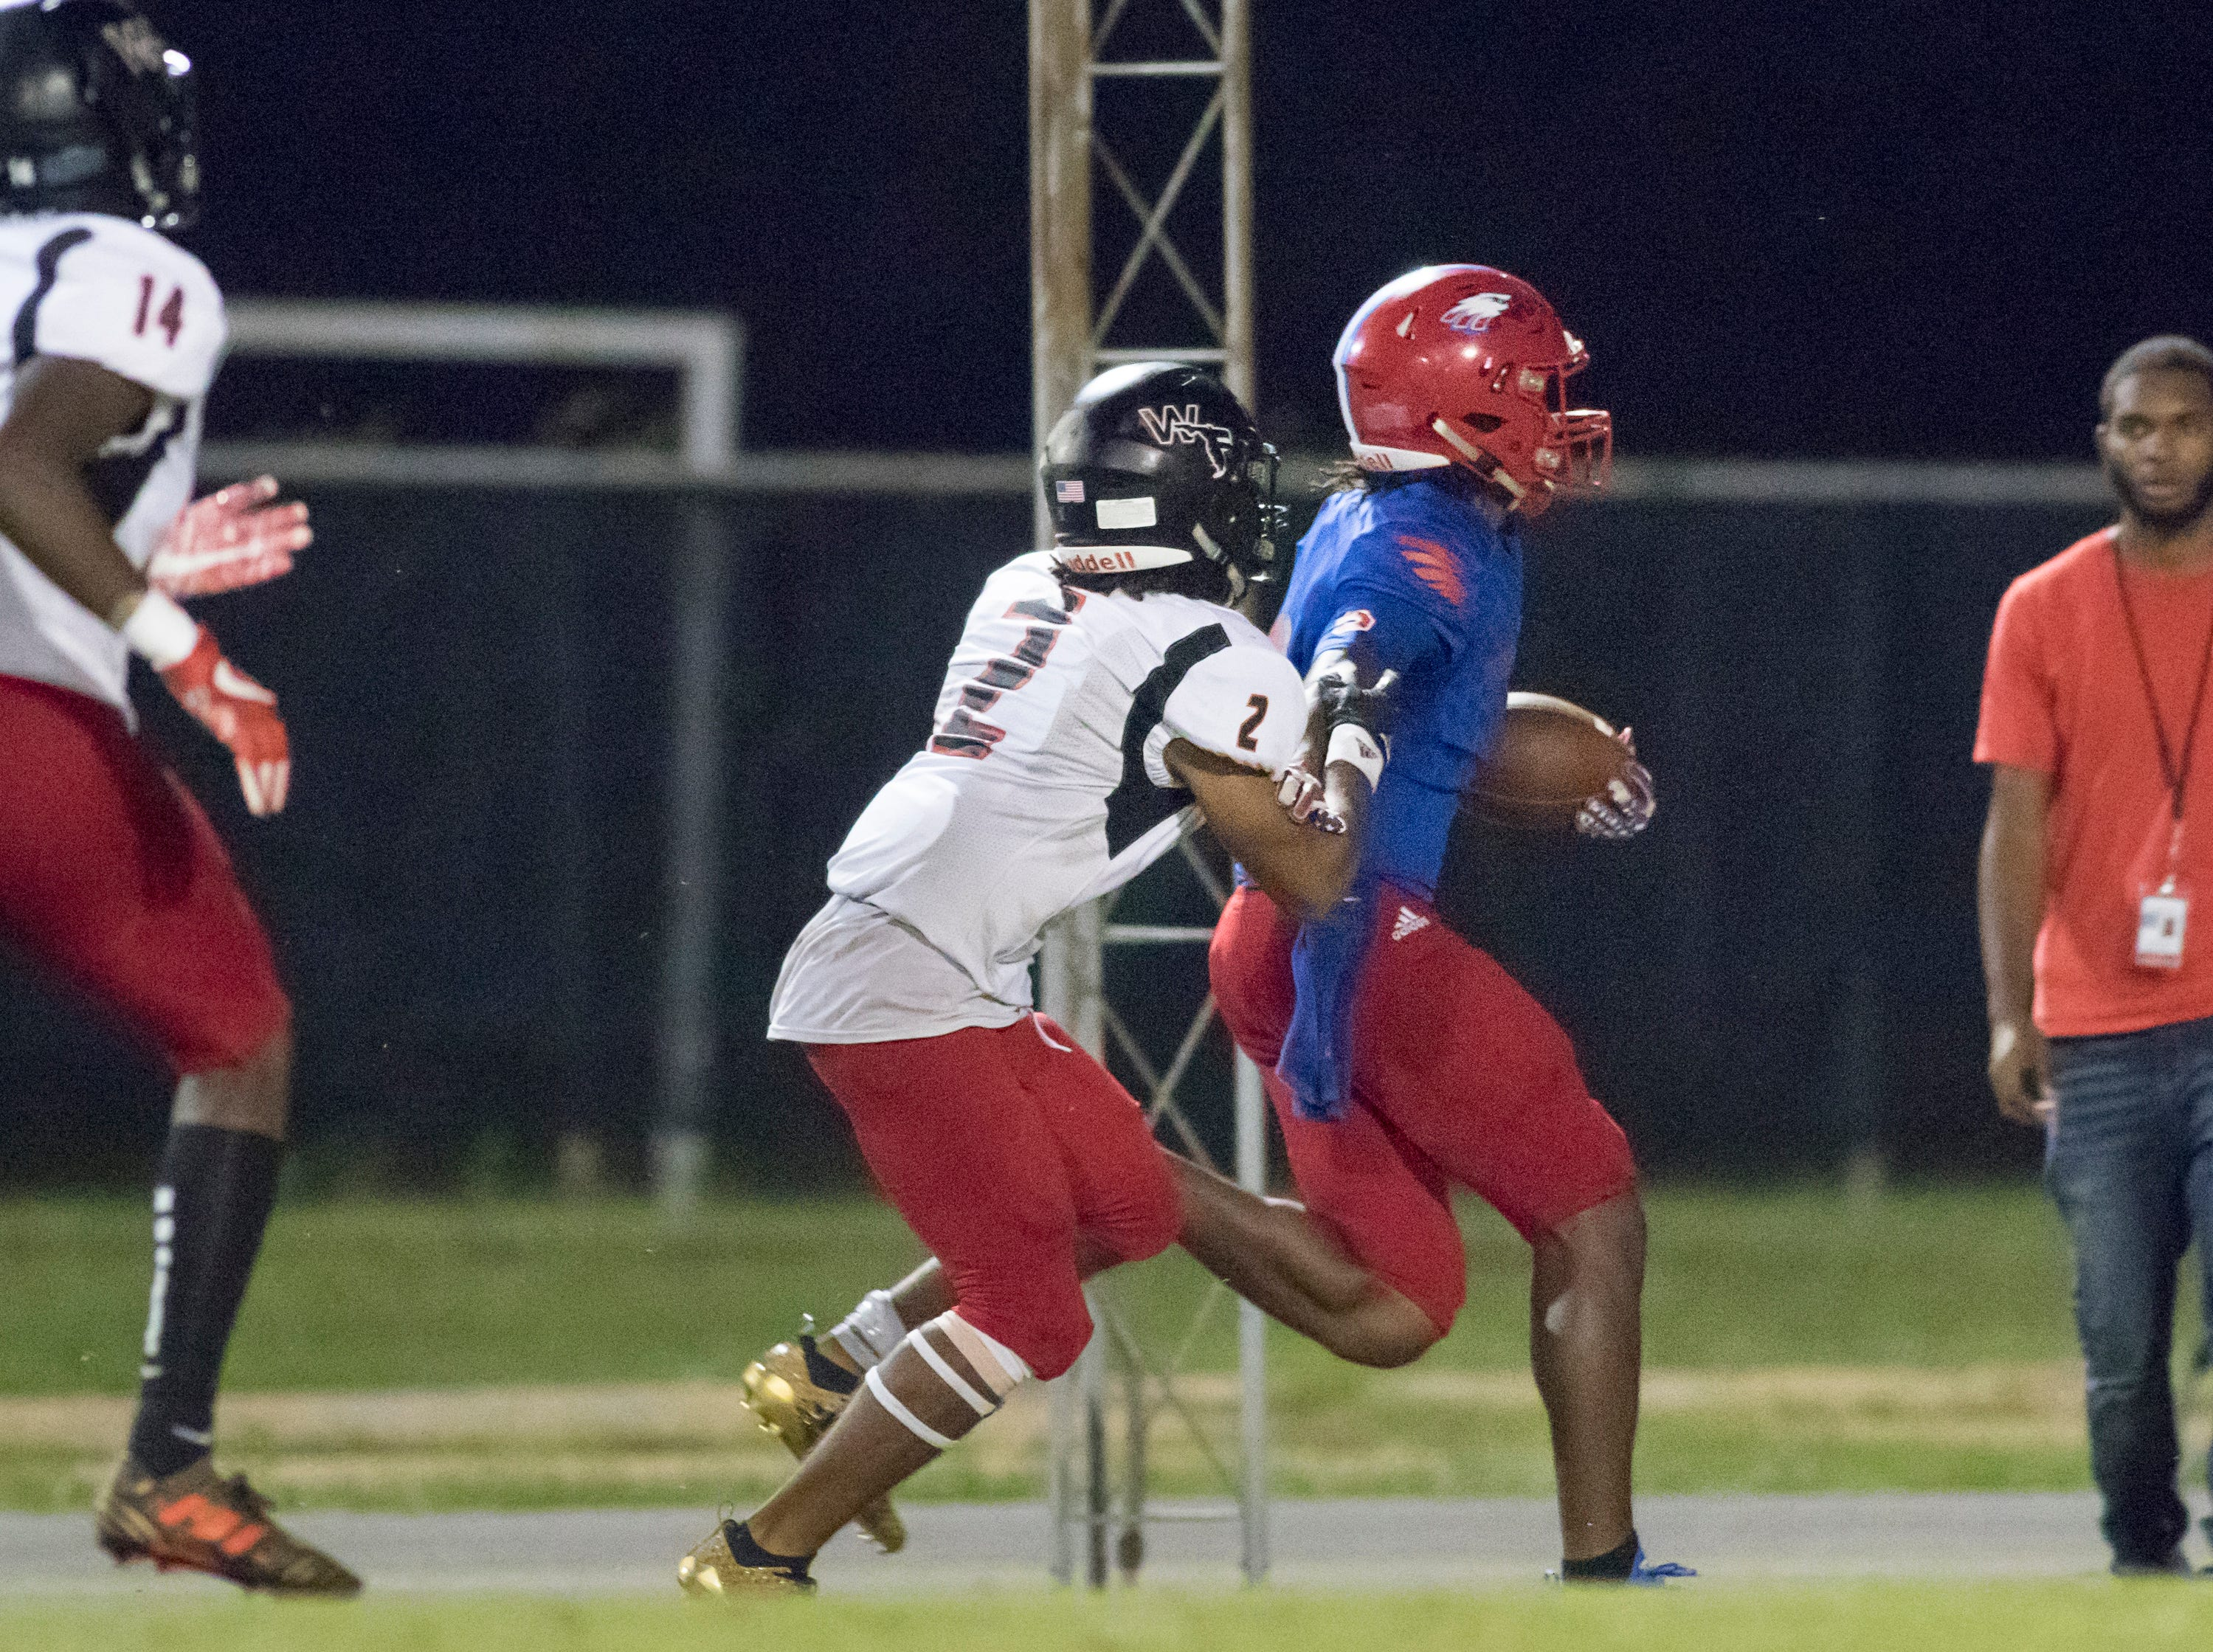 Eric Young (8) carries the ball for a big pick up during the West Florida vs Pine Forest football game at Pine Forest High School in Pensacola on Friday, October 5, 2018.